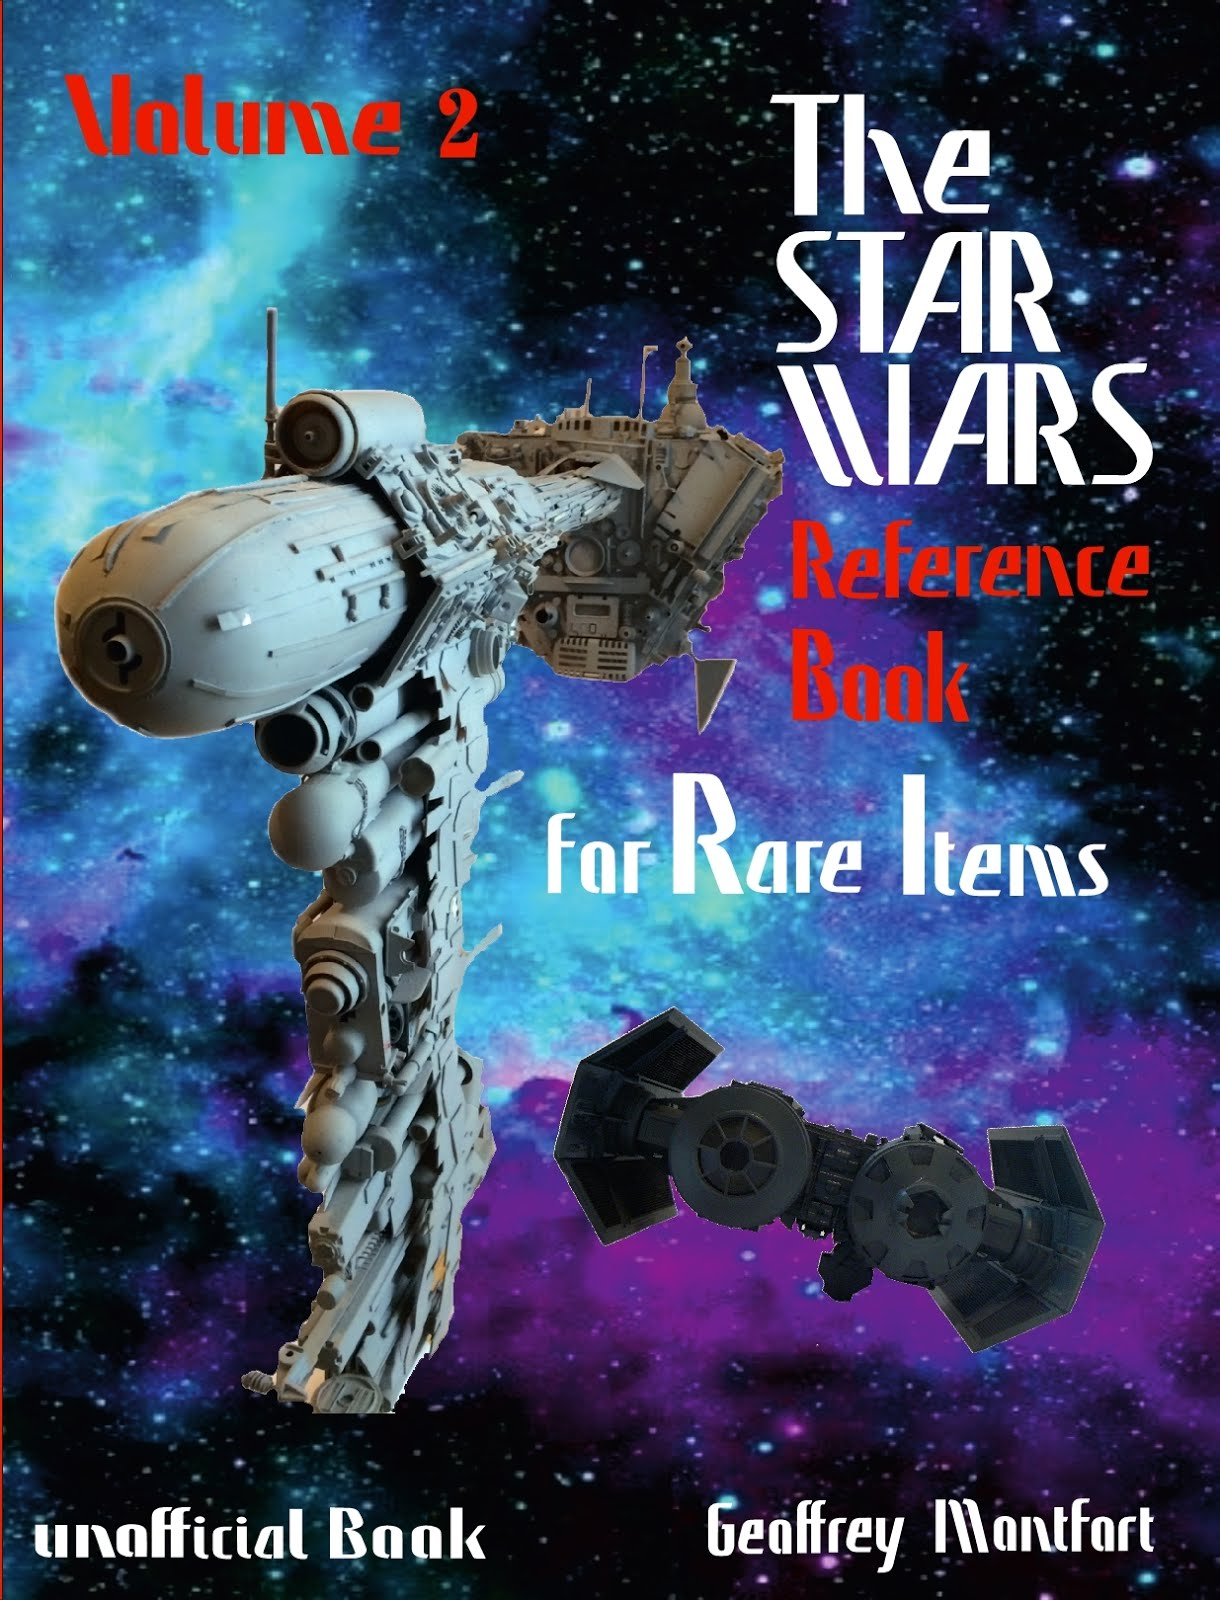 The Star Wars Reference Book for Rare Items